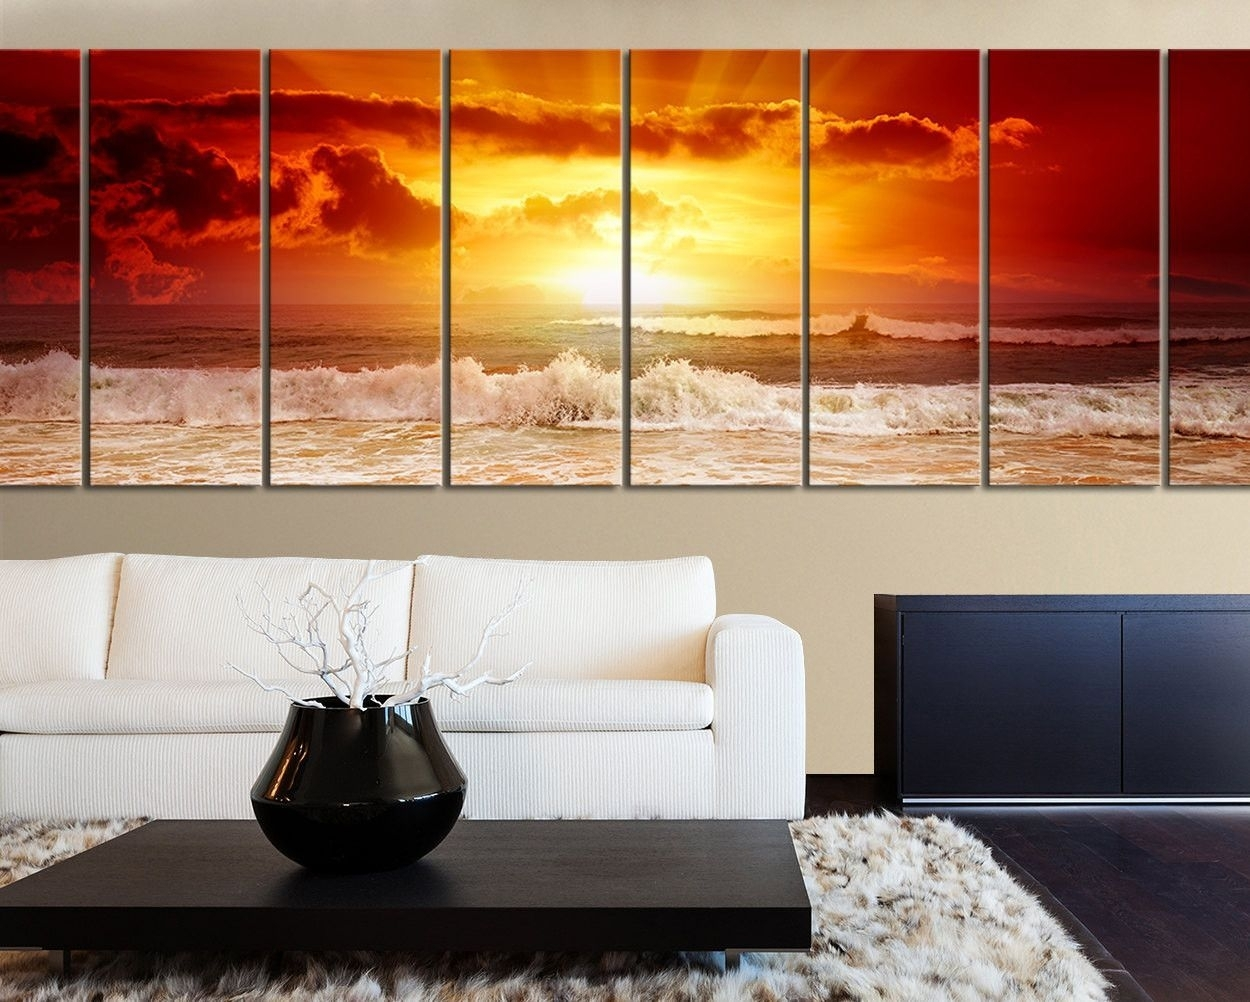 Large Wall Art Canvas Sunset Ocean Print – Xxl Wall Canvas Art In Most Current Ocean Canvas Wall Art (Gallery 15 of 15)